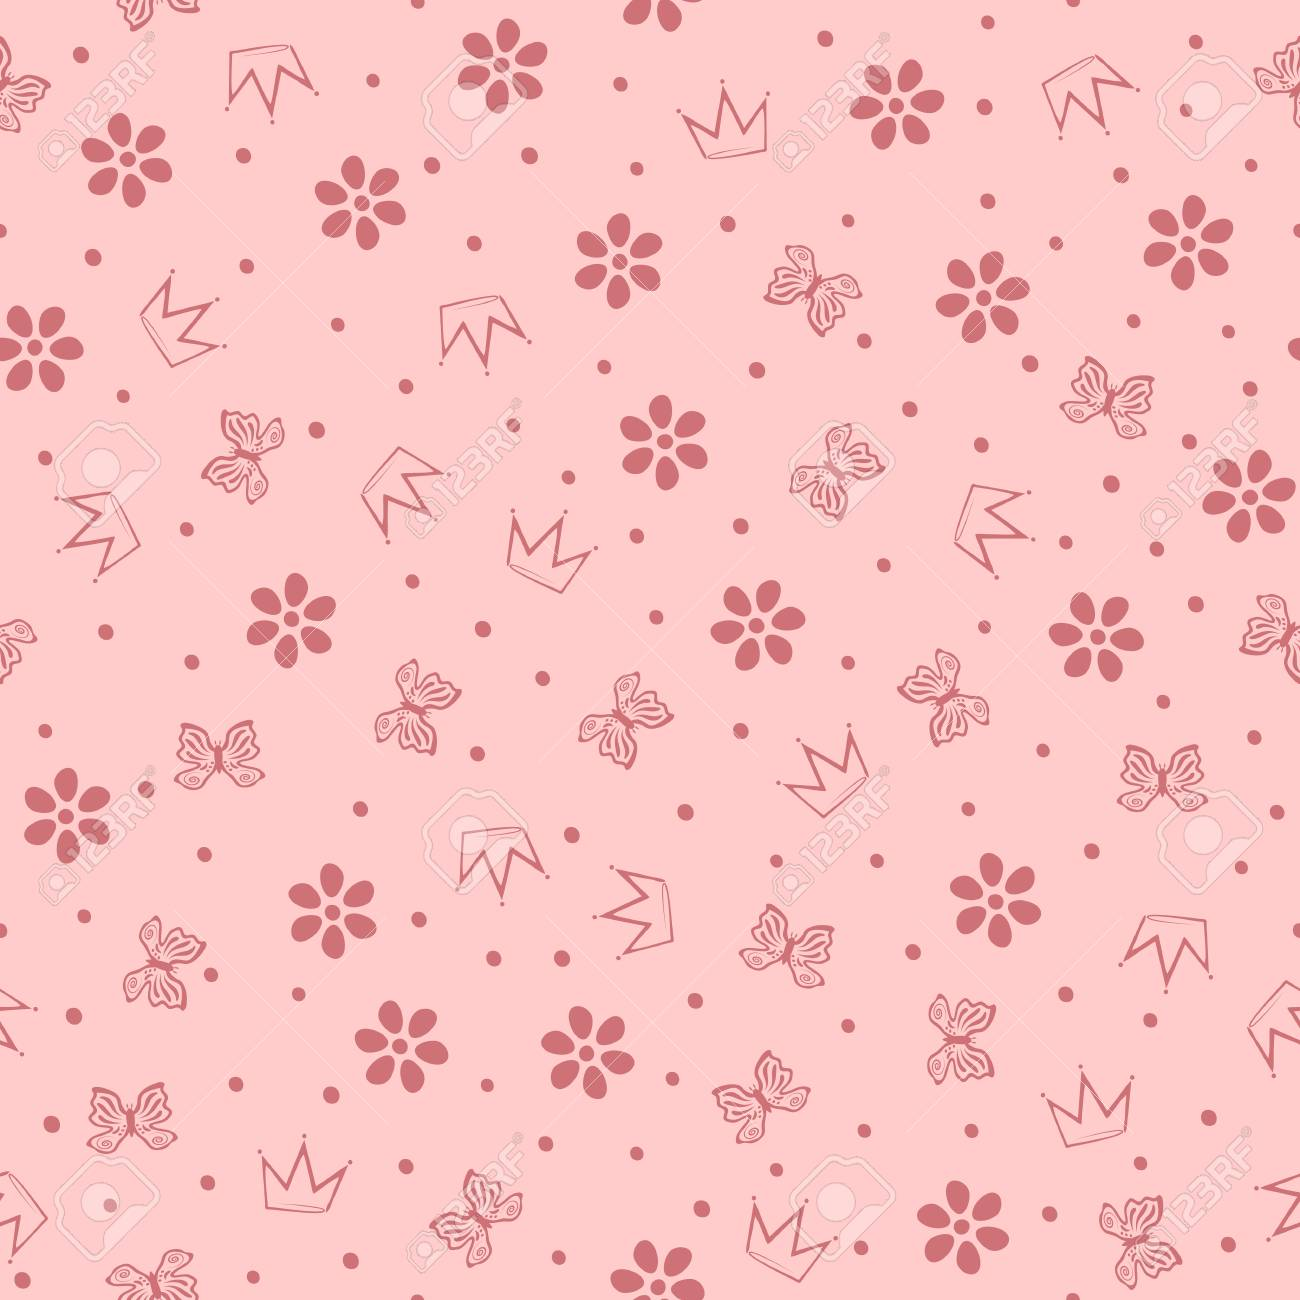 Flowers Butterflies Crowns And Small Round Dots Cute Girly Seamless Pattern Vector